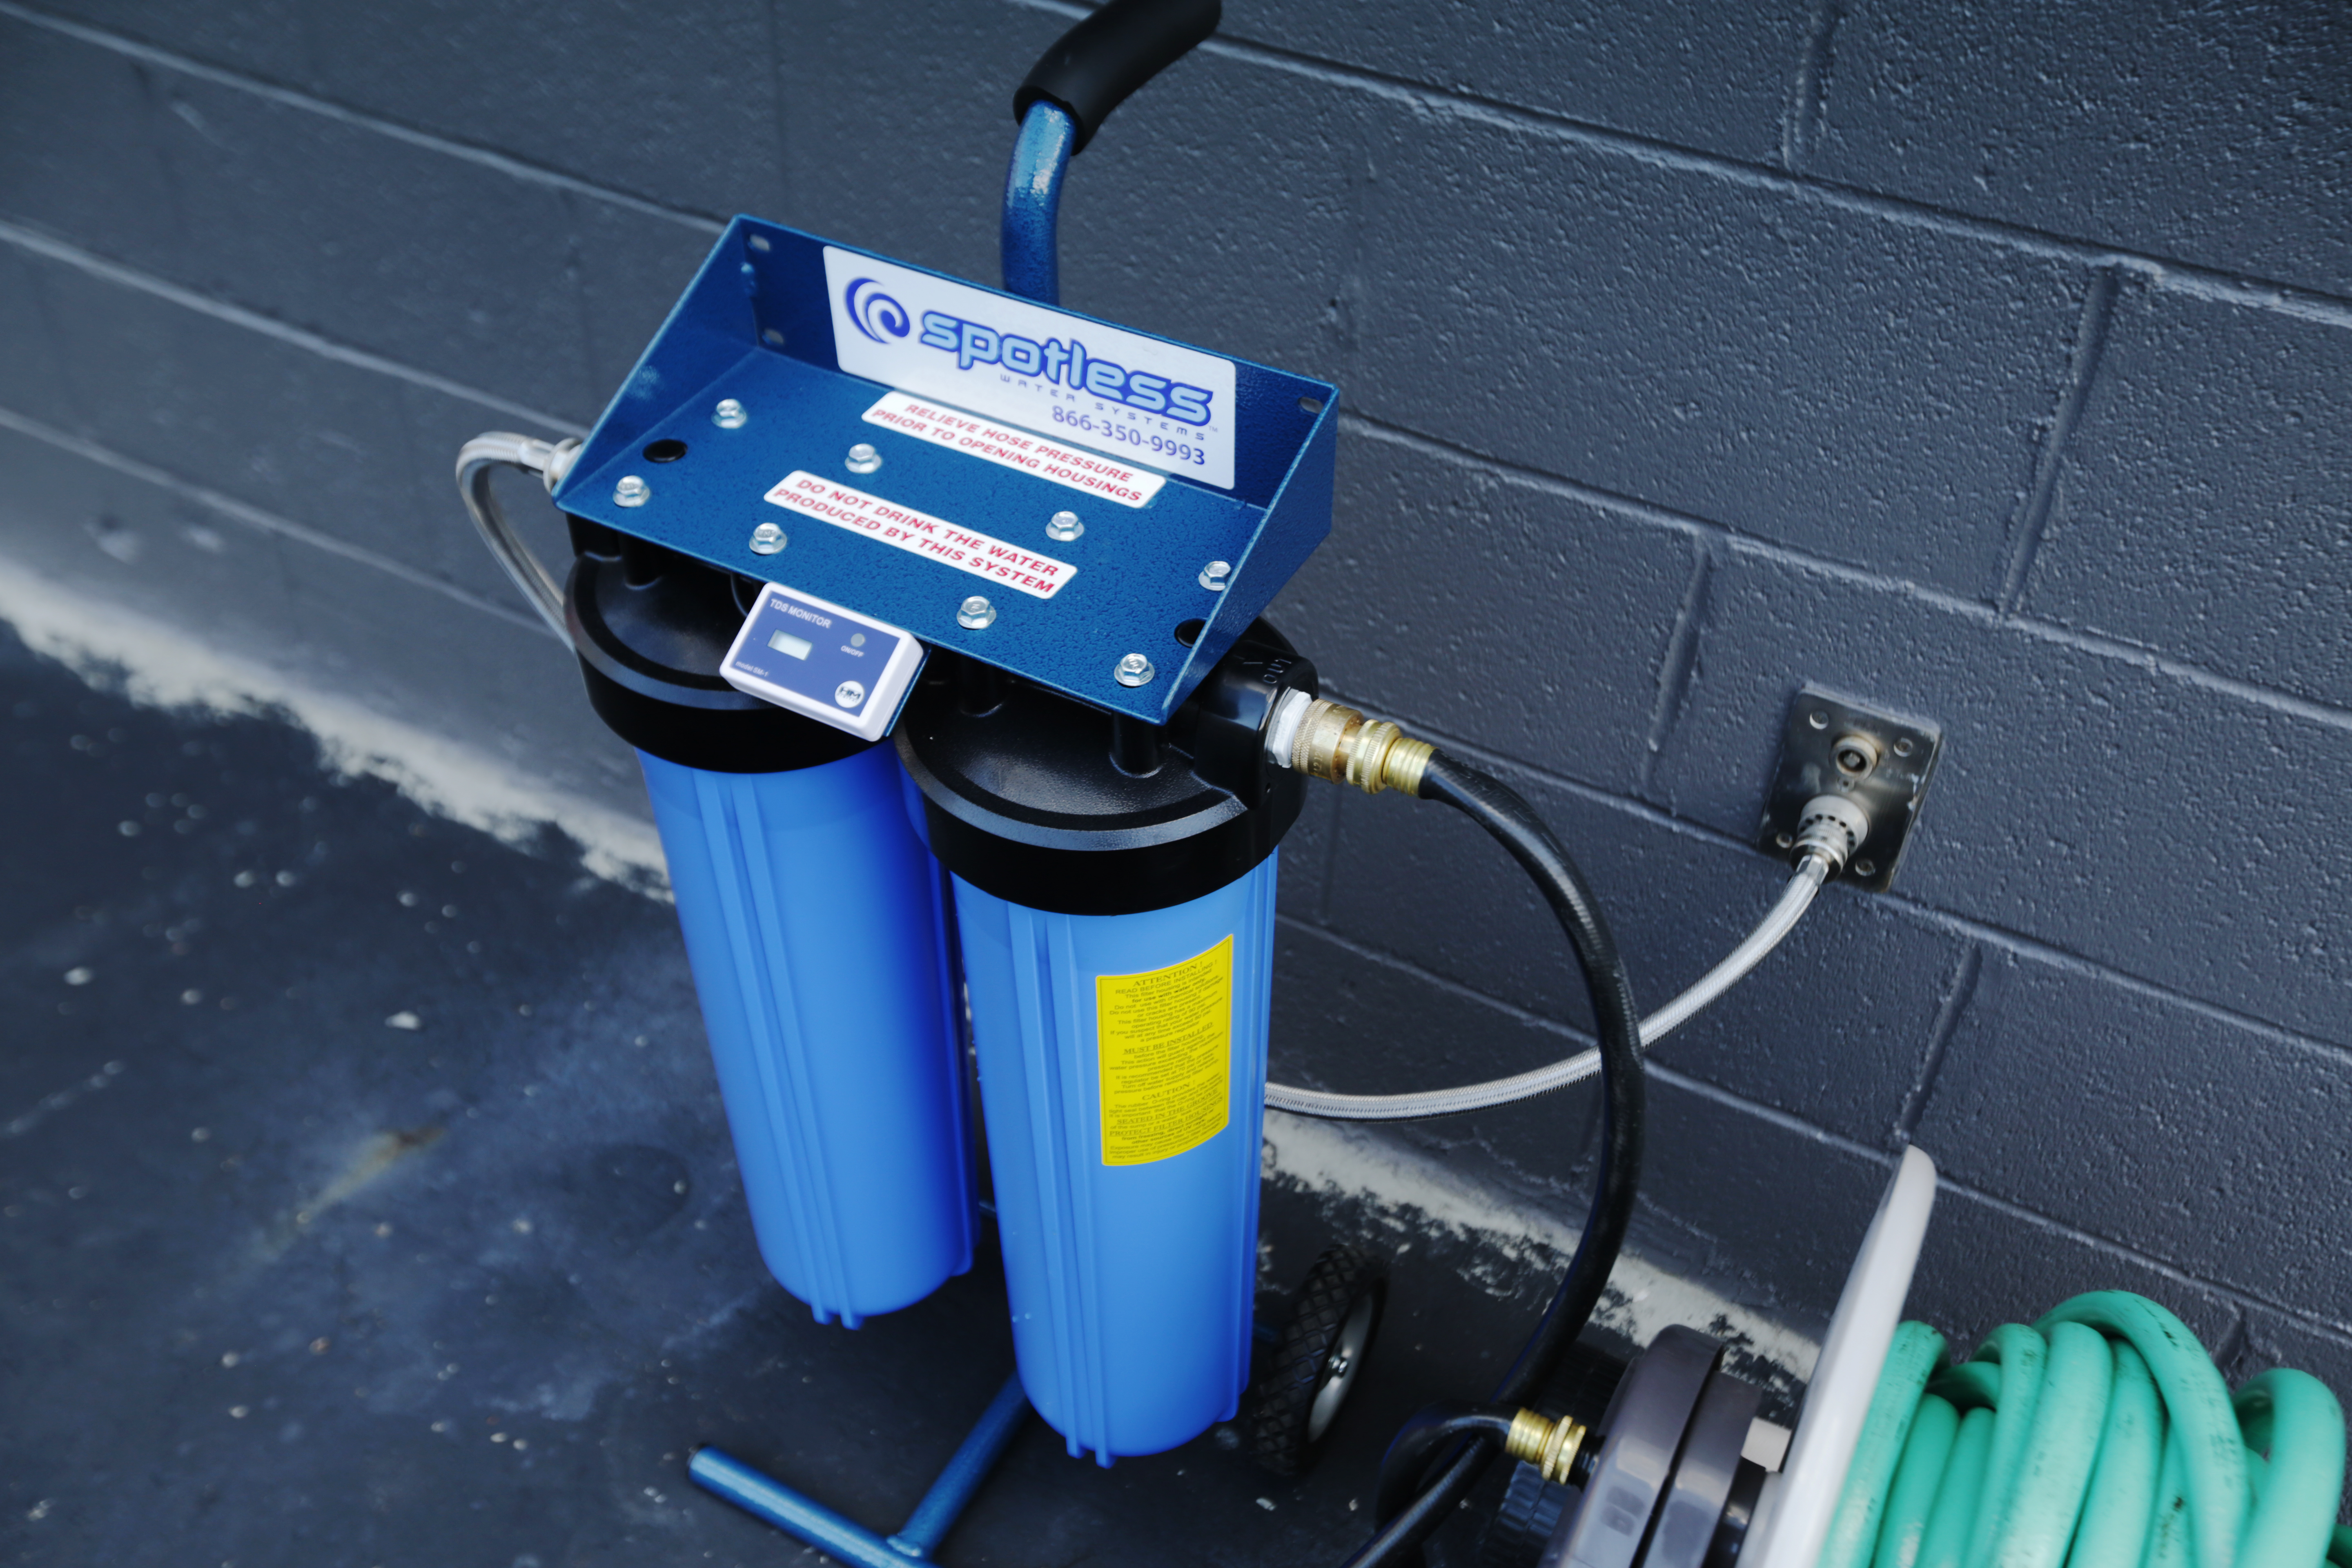 This Spotless car wash system helped our car dry quickly and without streaks.